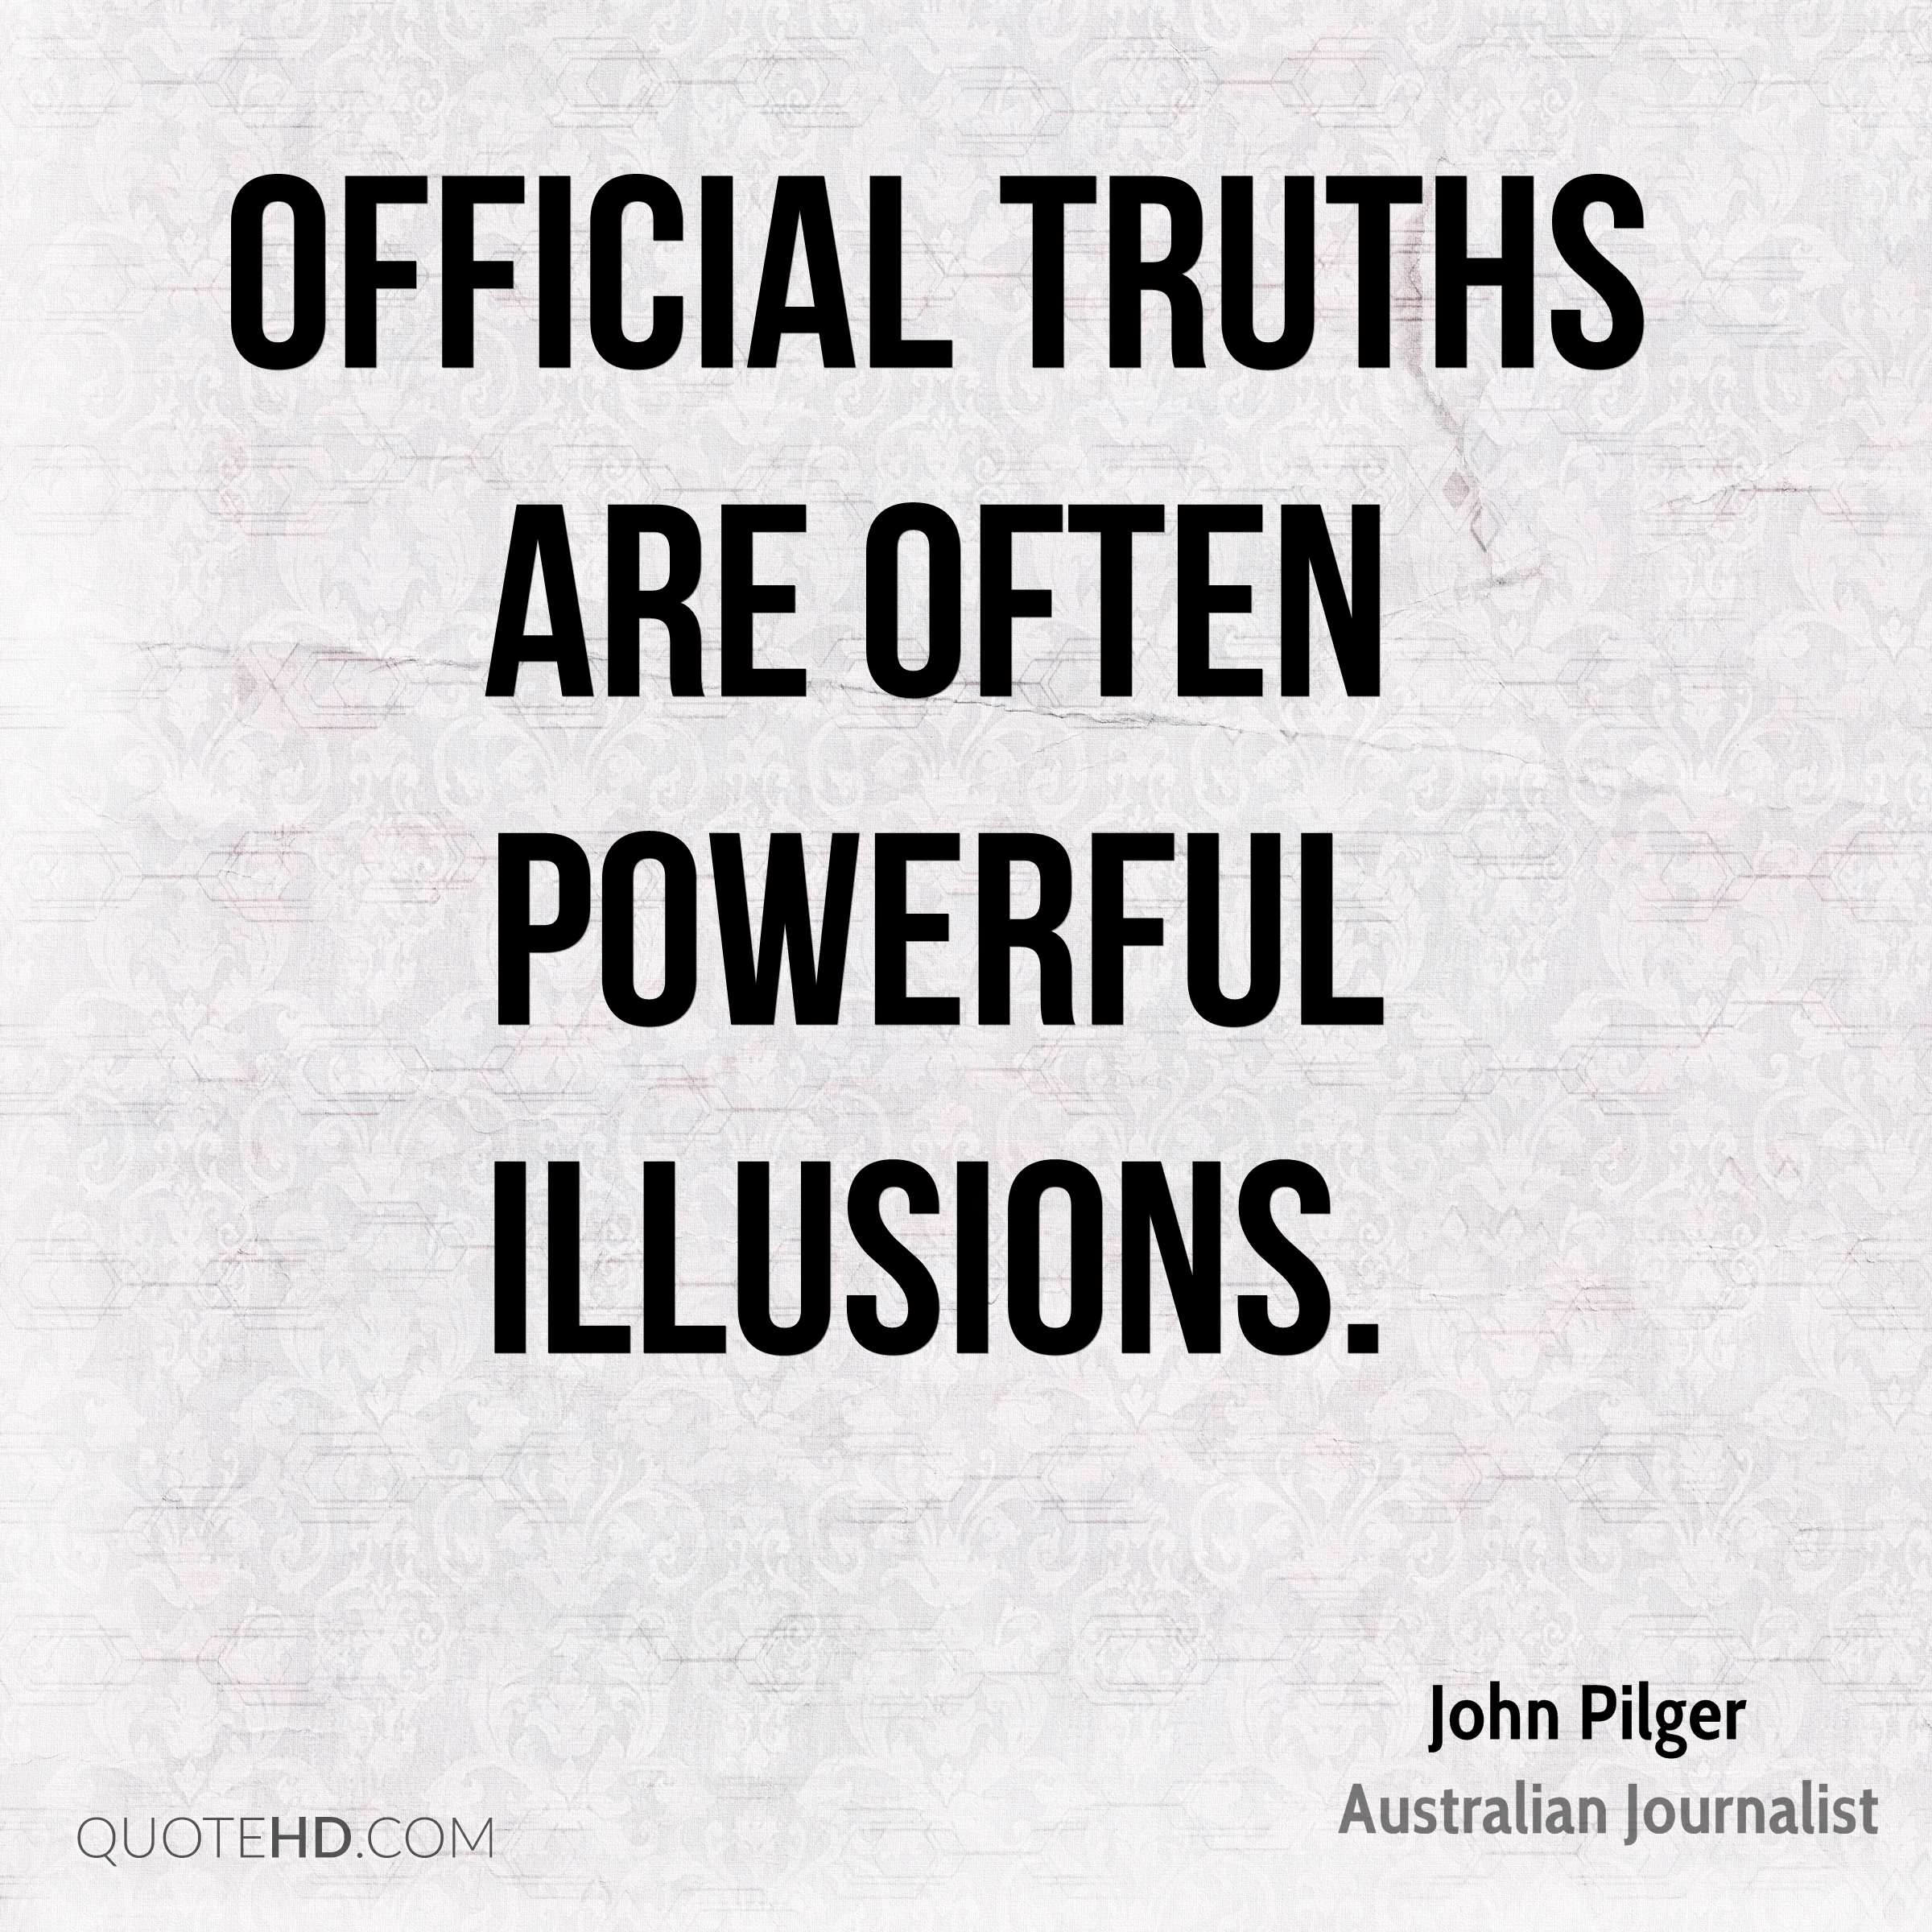 Official truths are often powerful illusions.